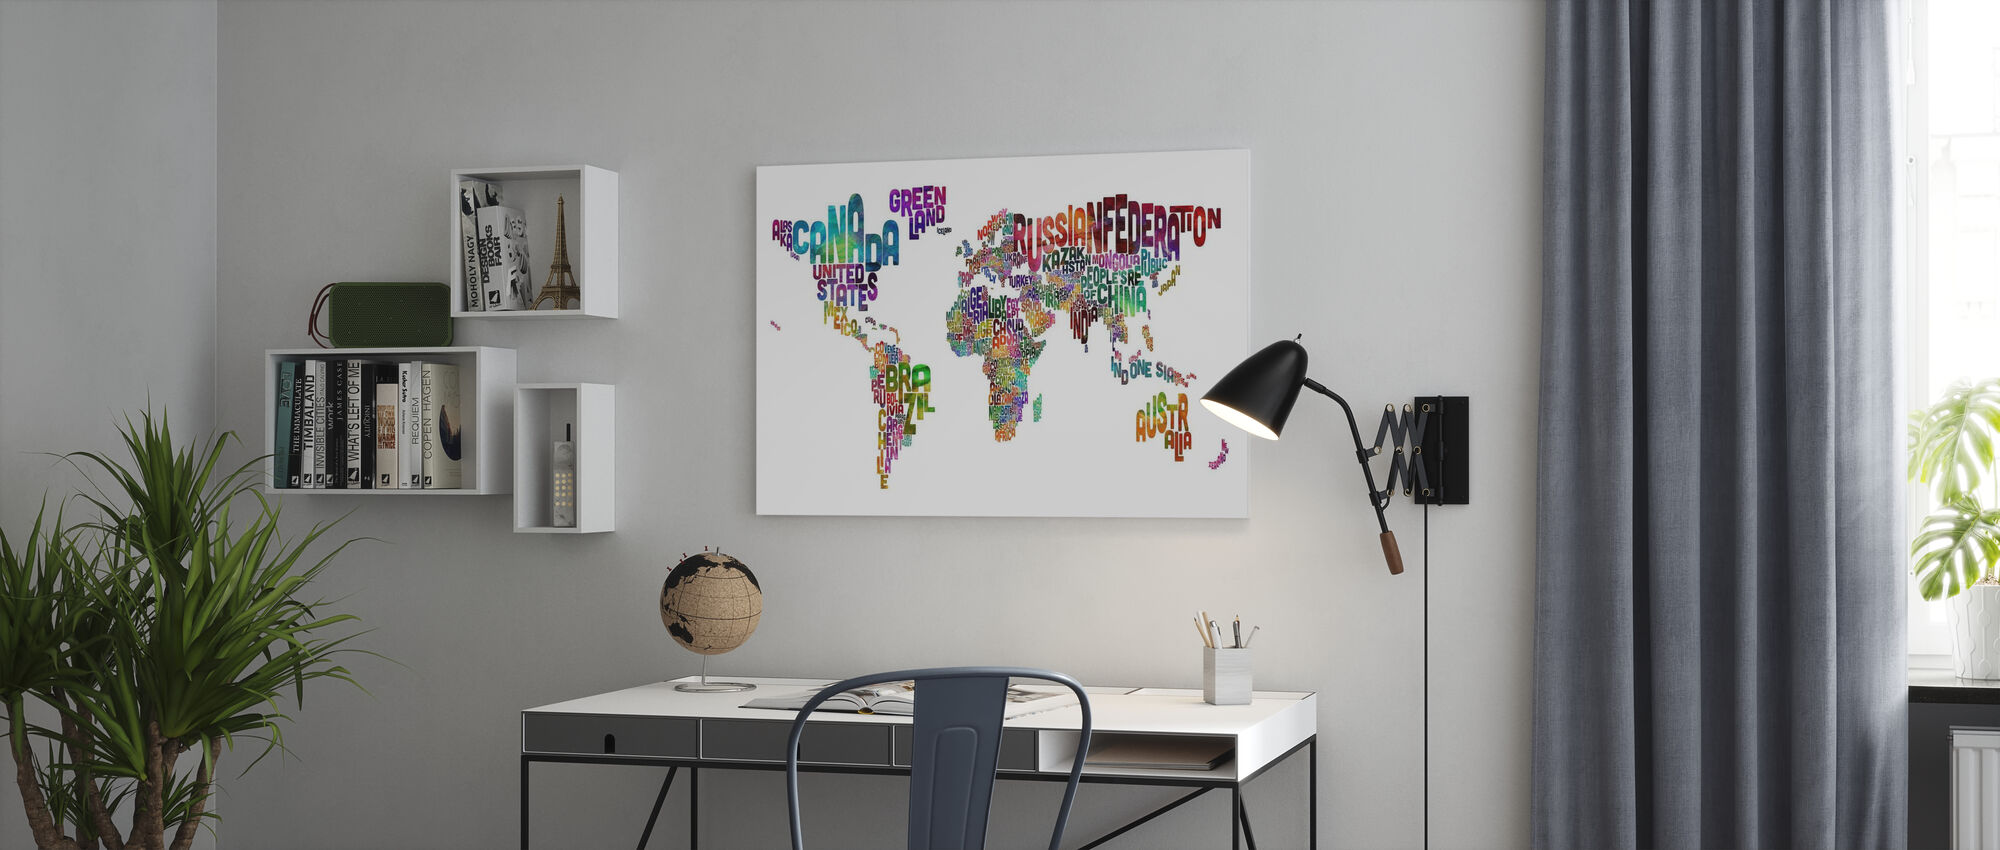 Typographic Text World Map - Canvas print - Office